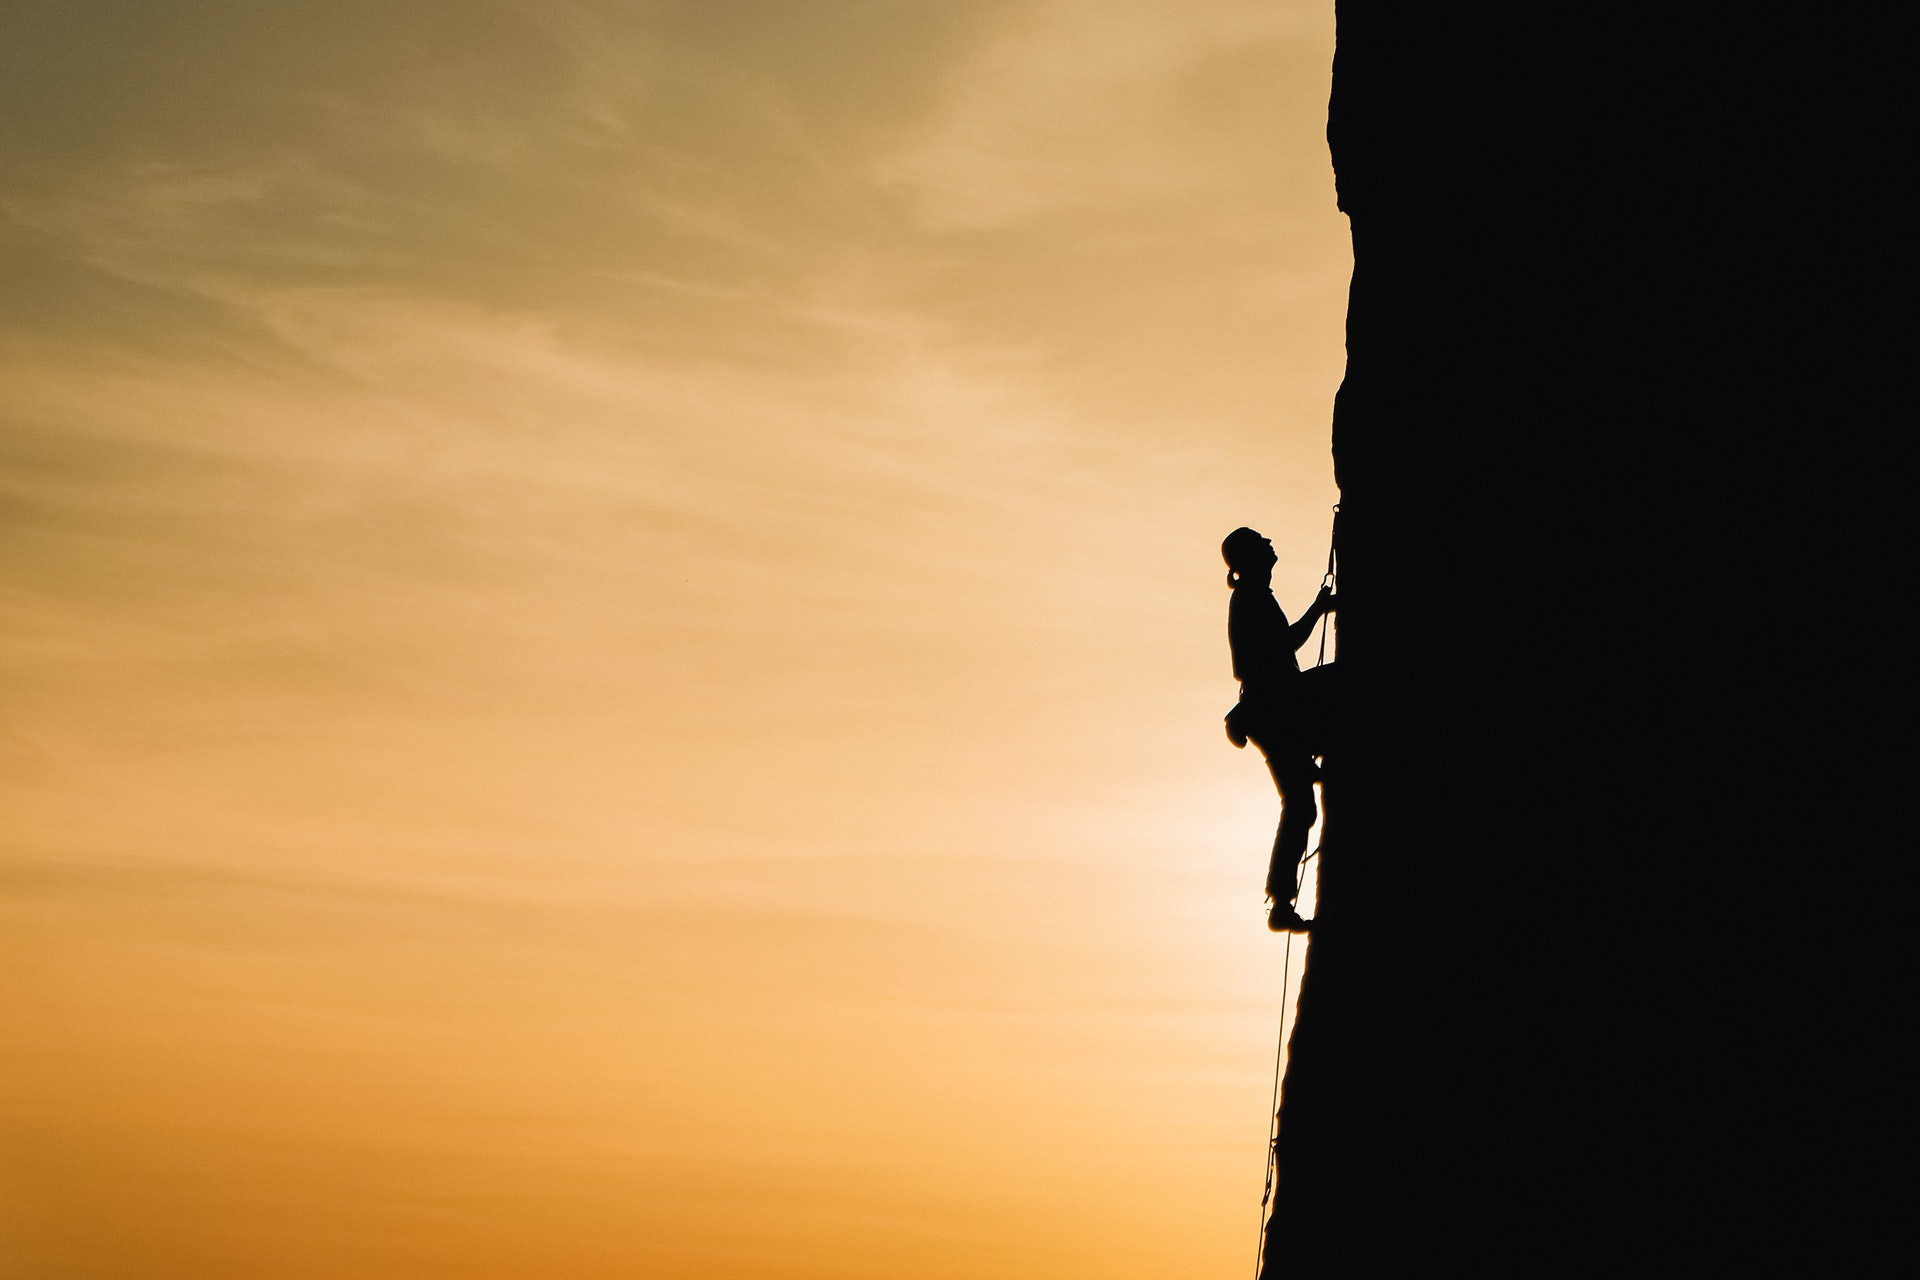 Tips For When You Try Rock Climbing